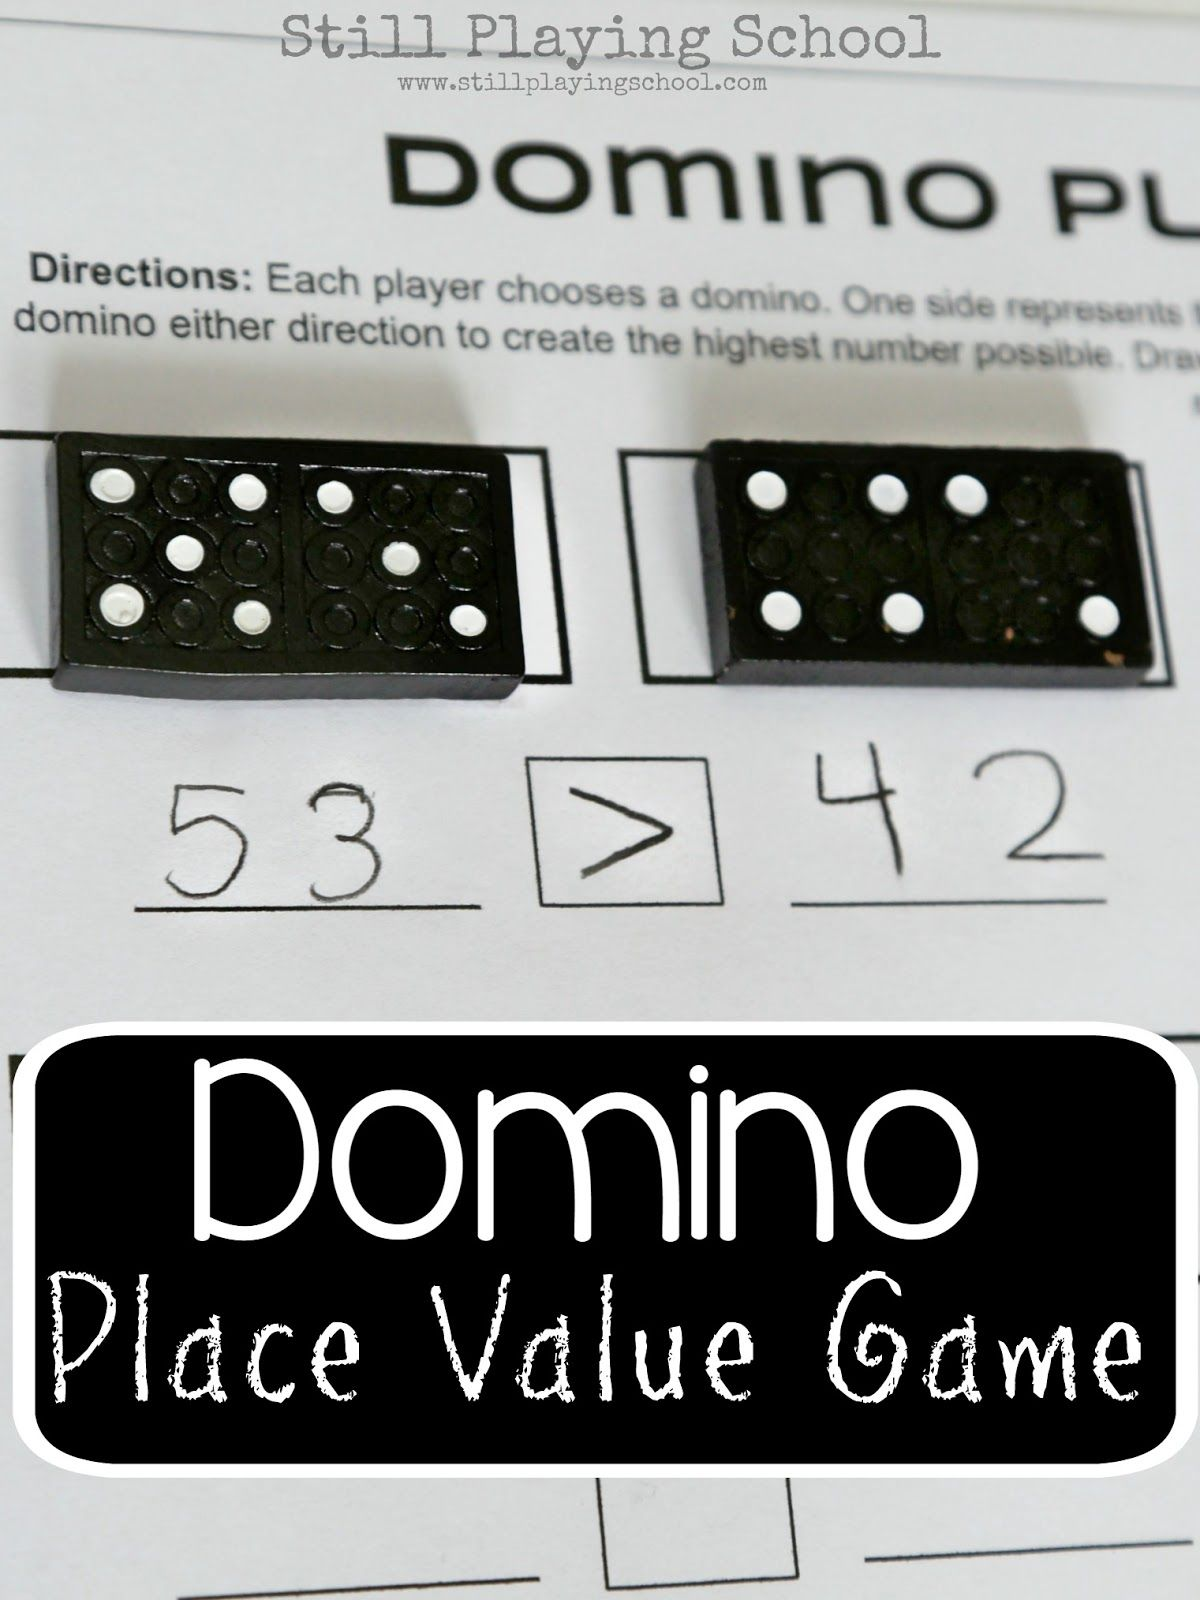 Dominoes Place Value Game for Kids   Math, Gaming and School